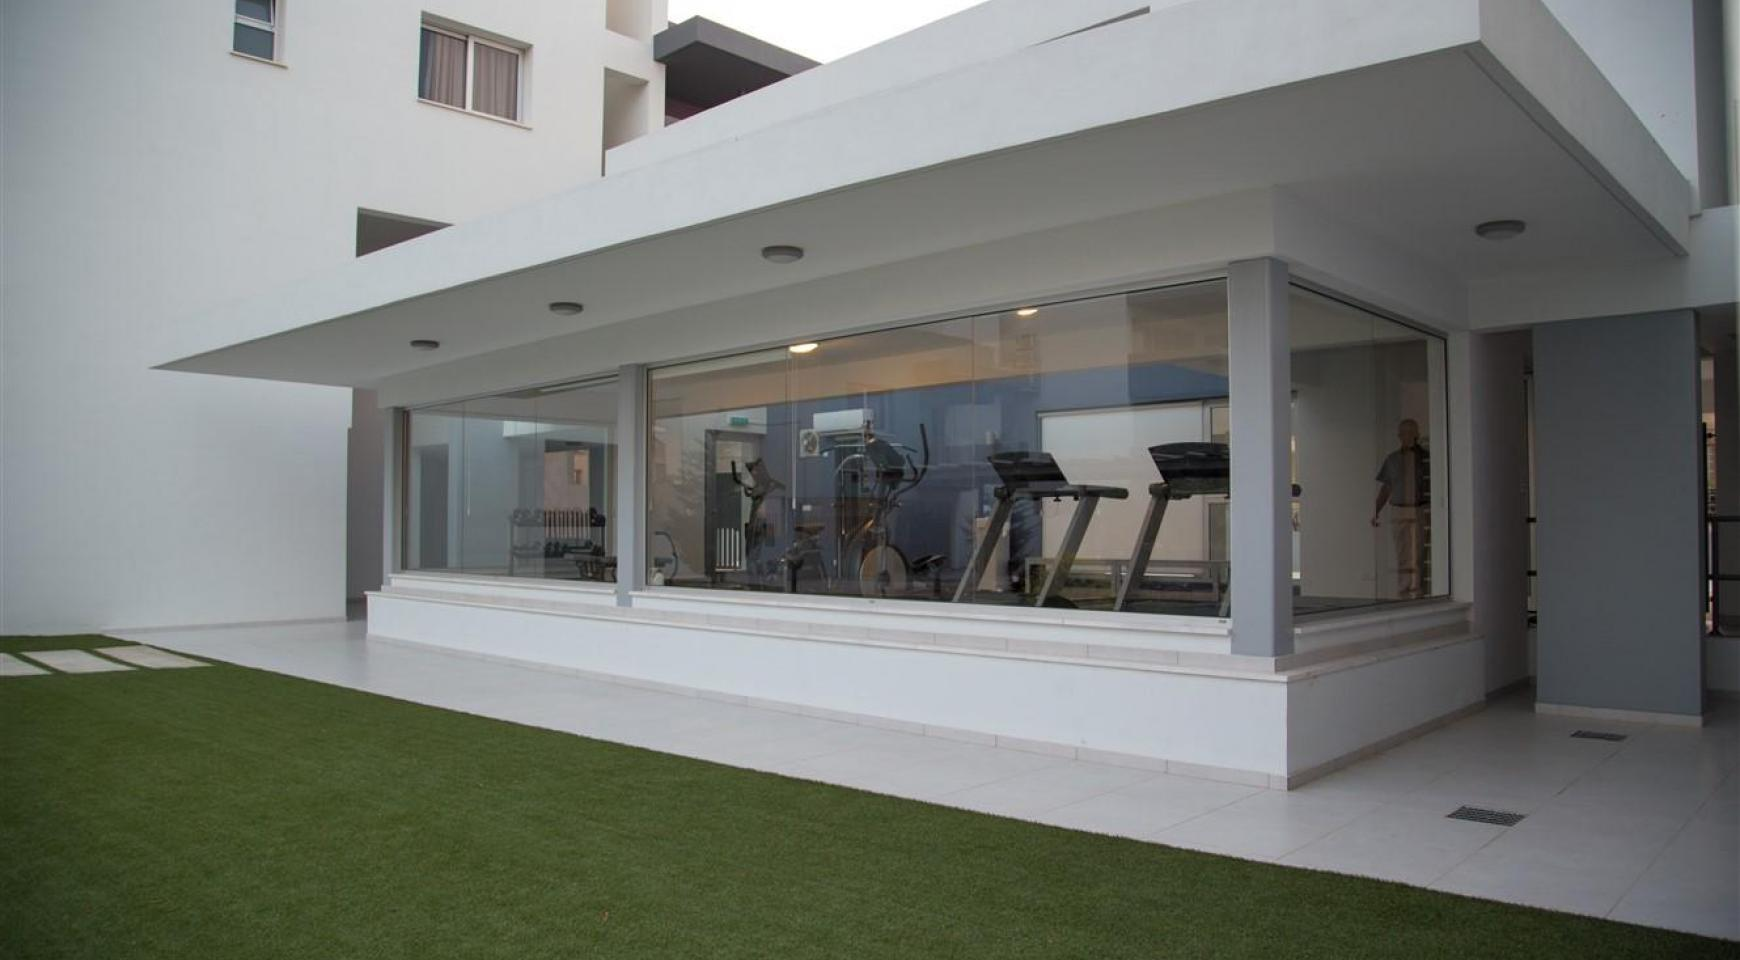 Elite 3 Bedroom Penthouse with private Swimming Pool on the Roof - 16